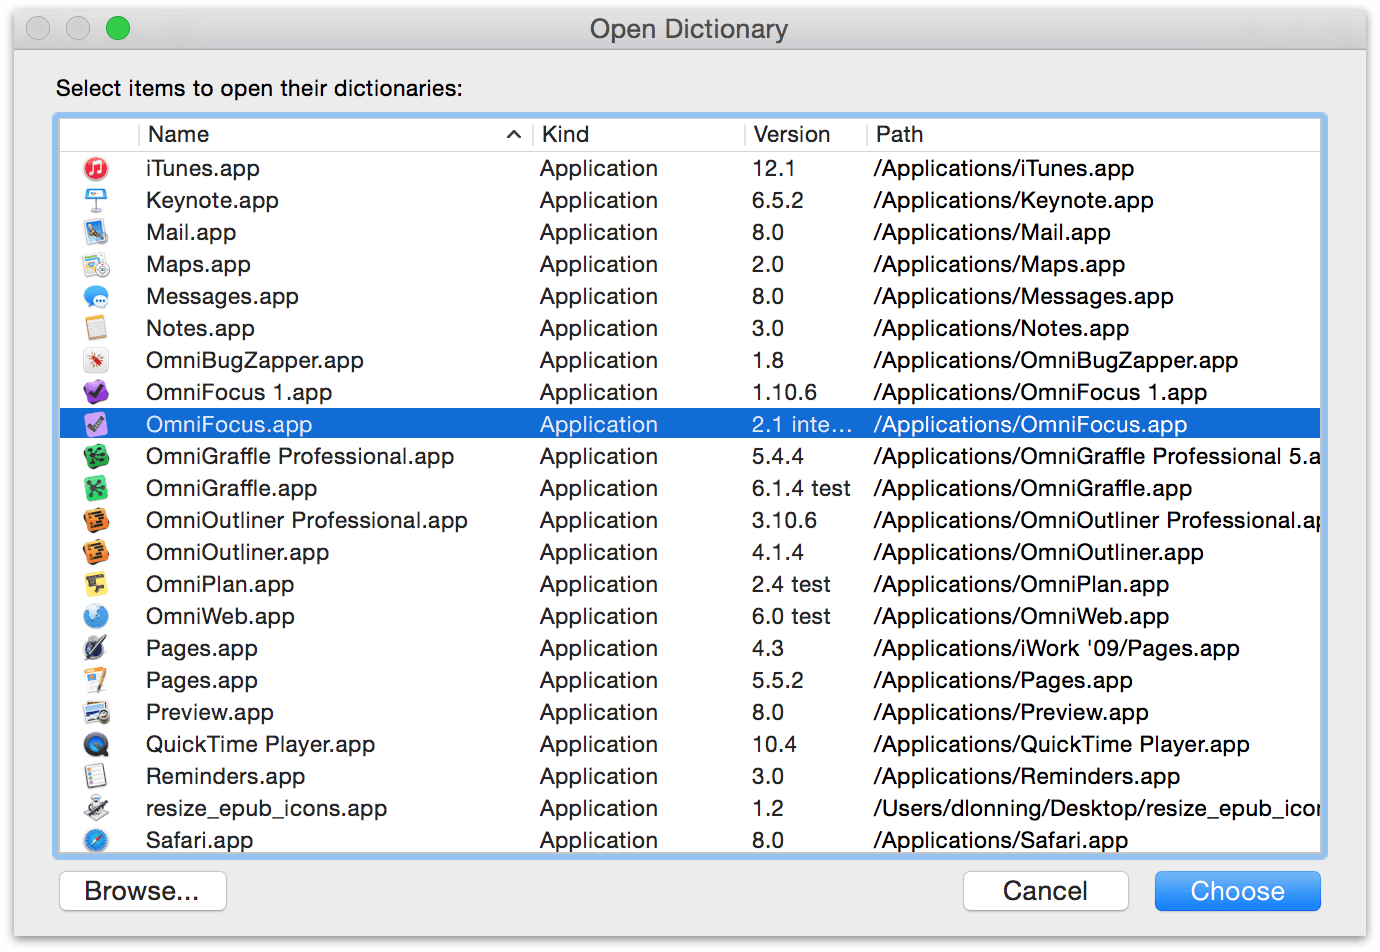 Locate OmniFocus.app in the Open Dictionary window and then click Choose